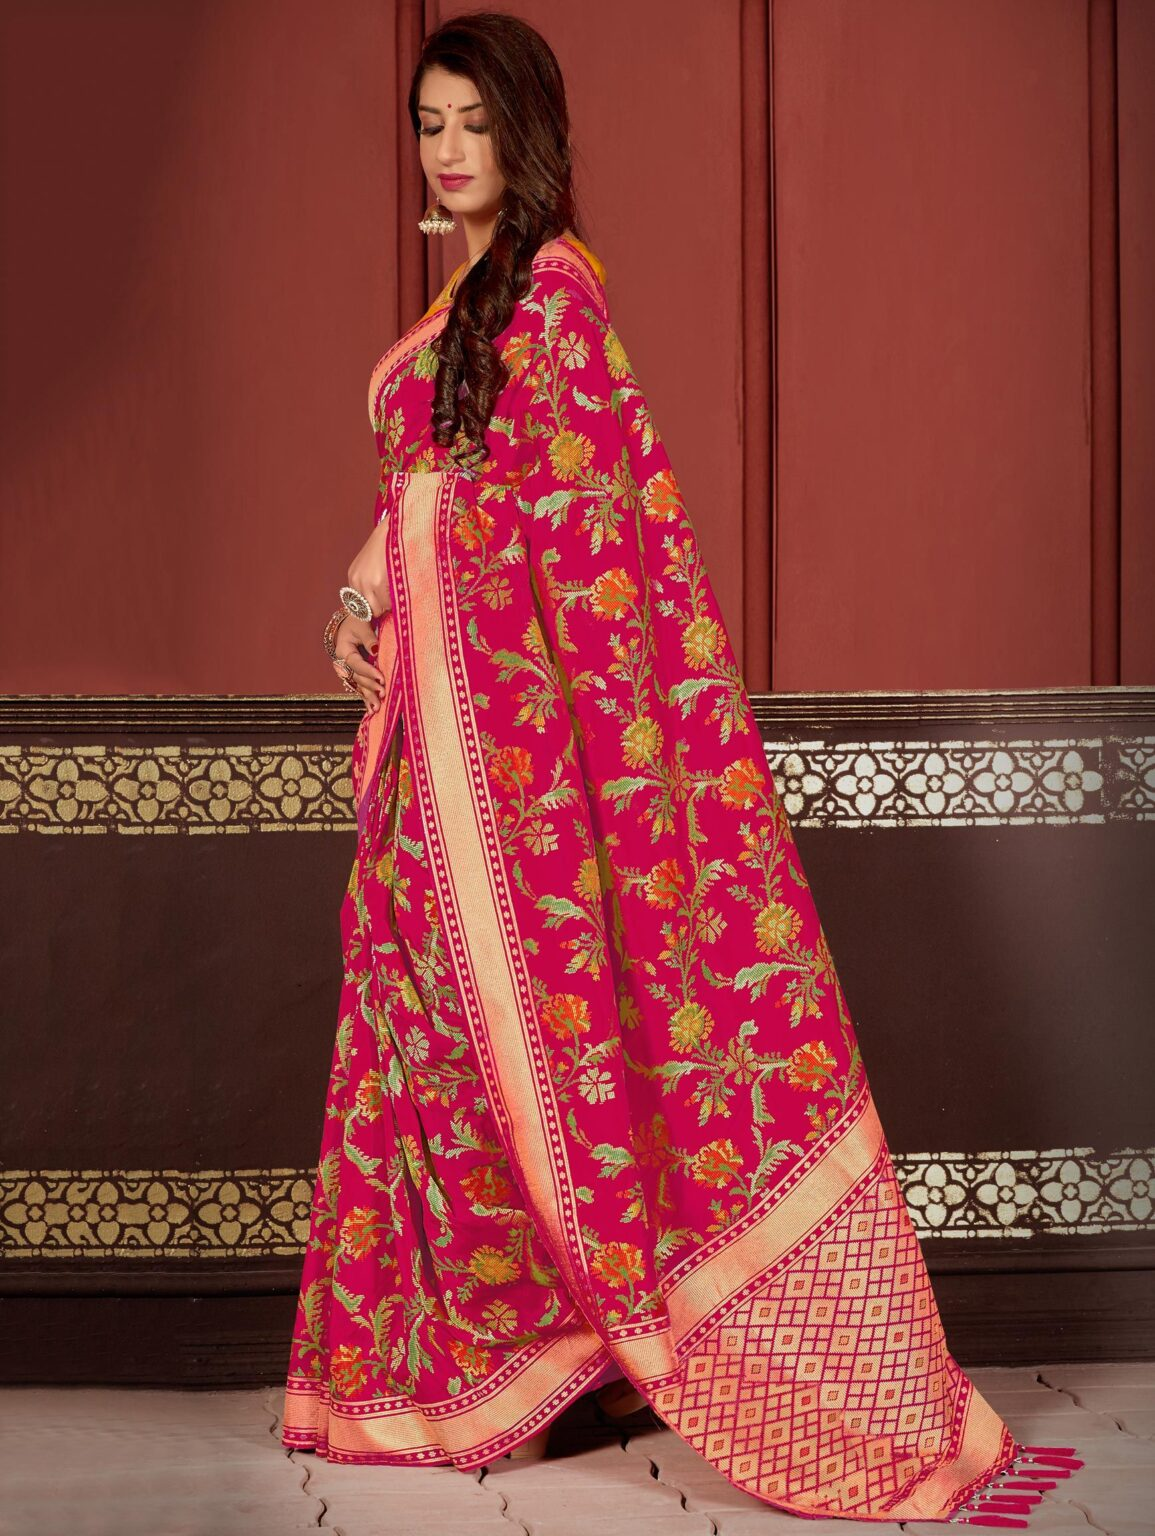 Rani Pink Banarasi Silk Traditional Woven Saree with Zari Gold Border and Pallu